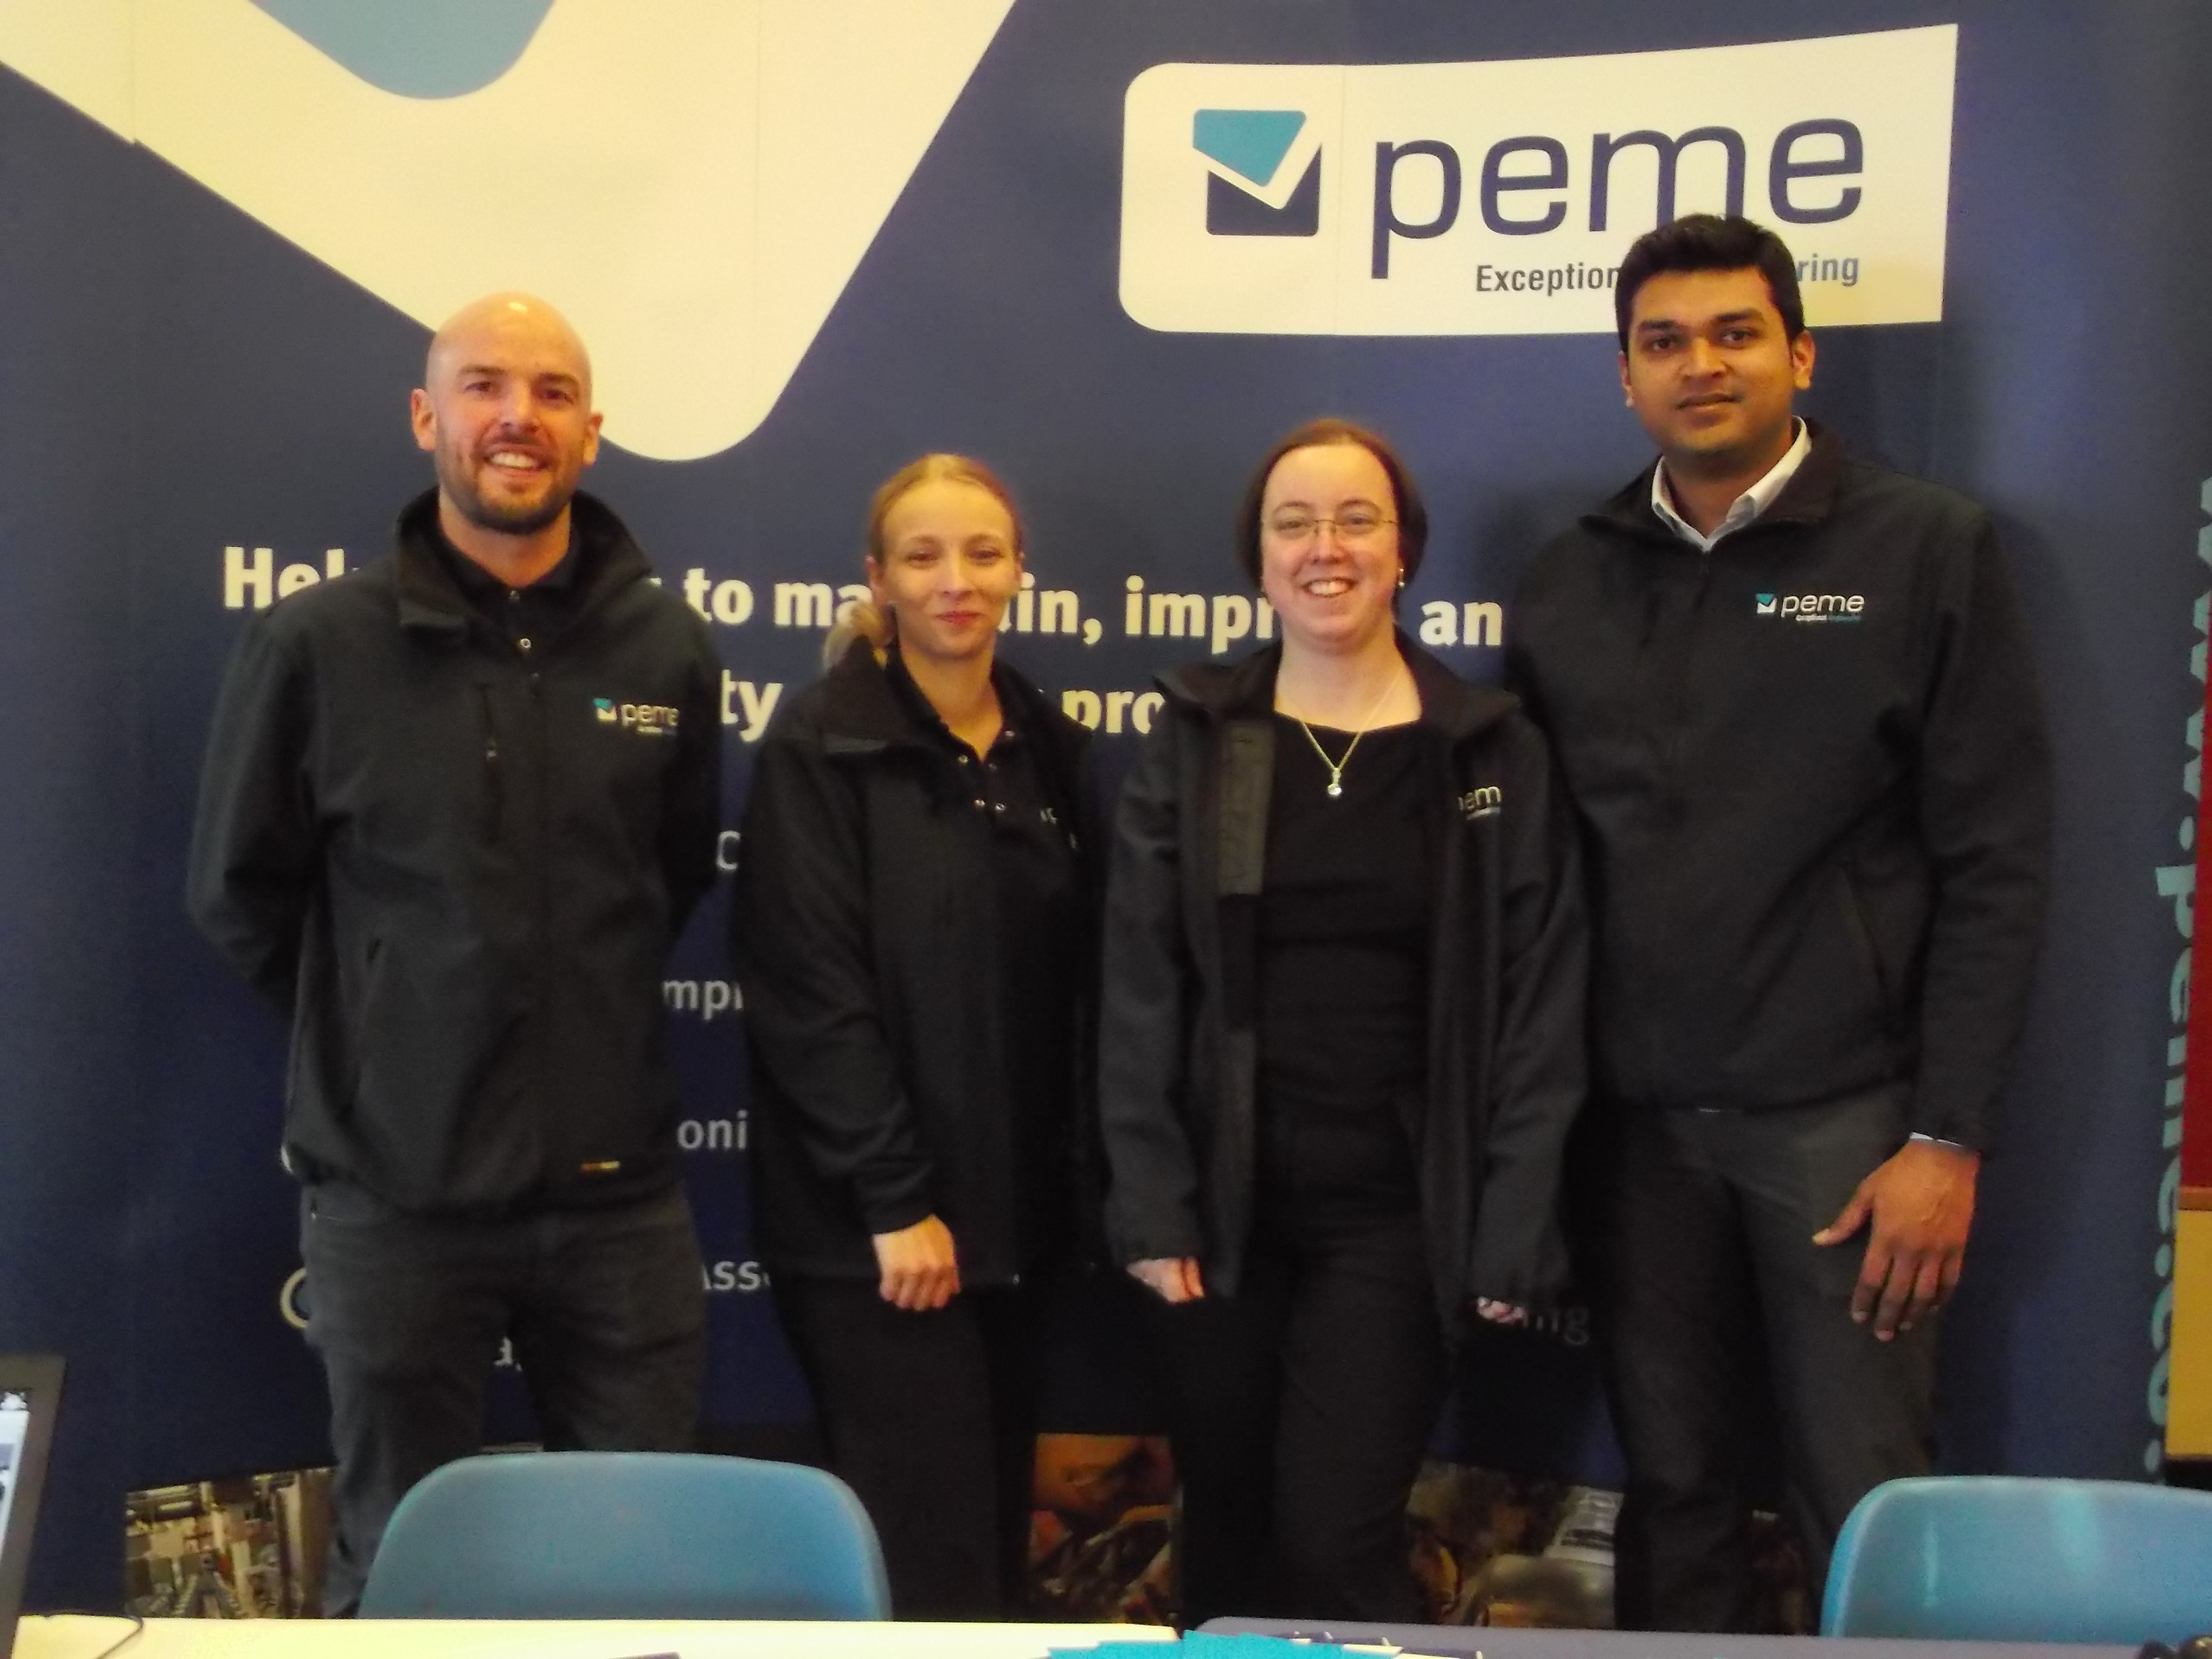 PEME Supports Wisbech Careers Fair